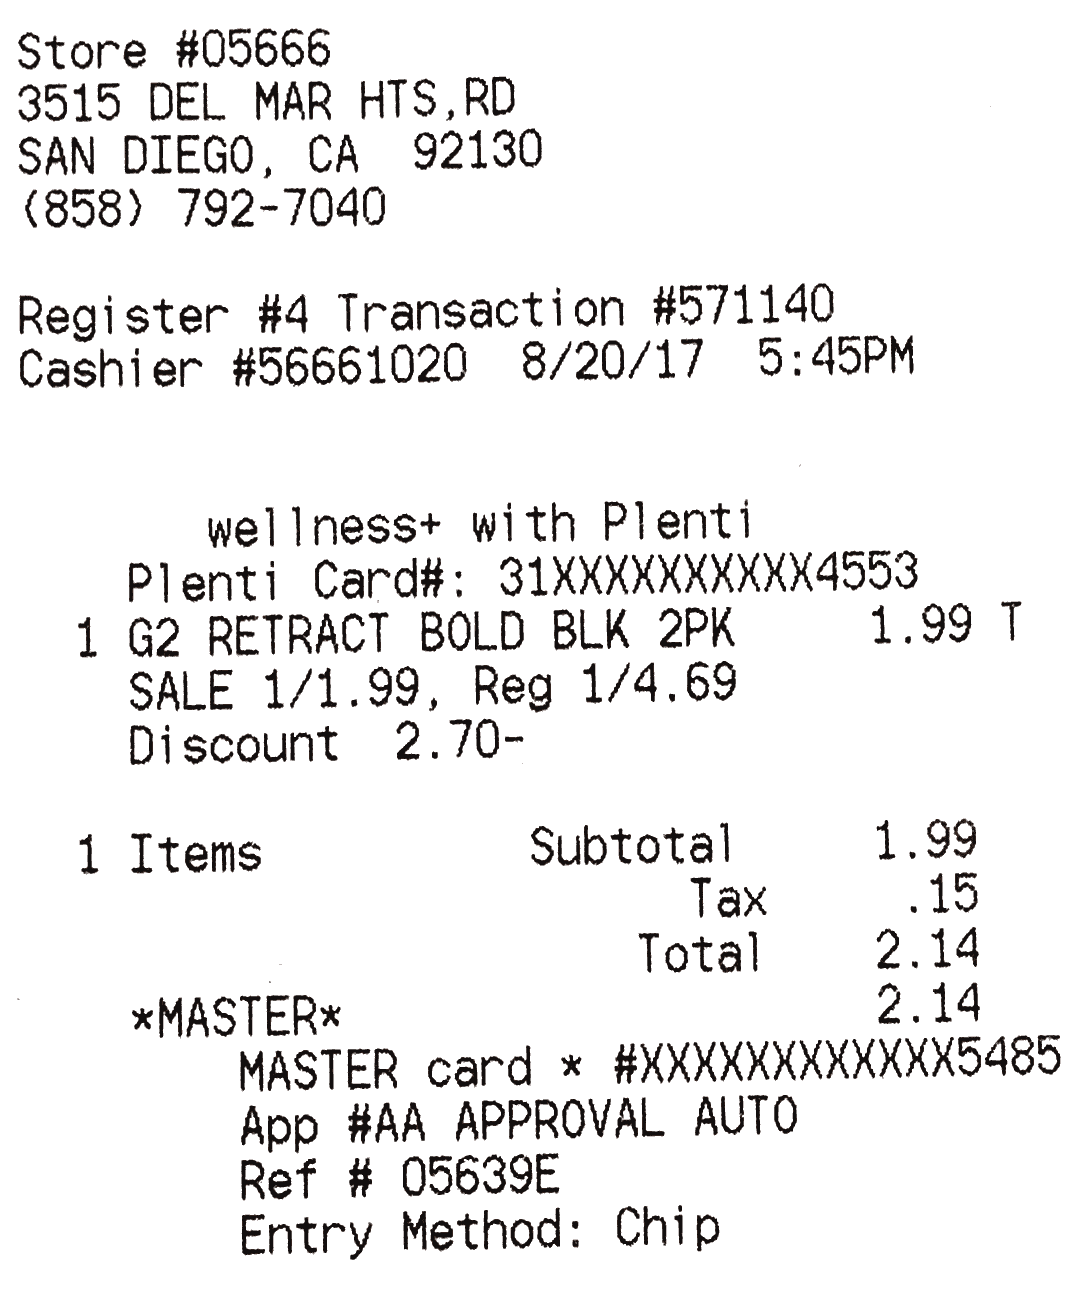 OCR Receipt Example